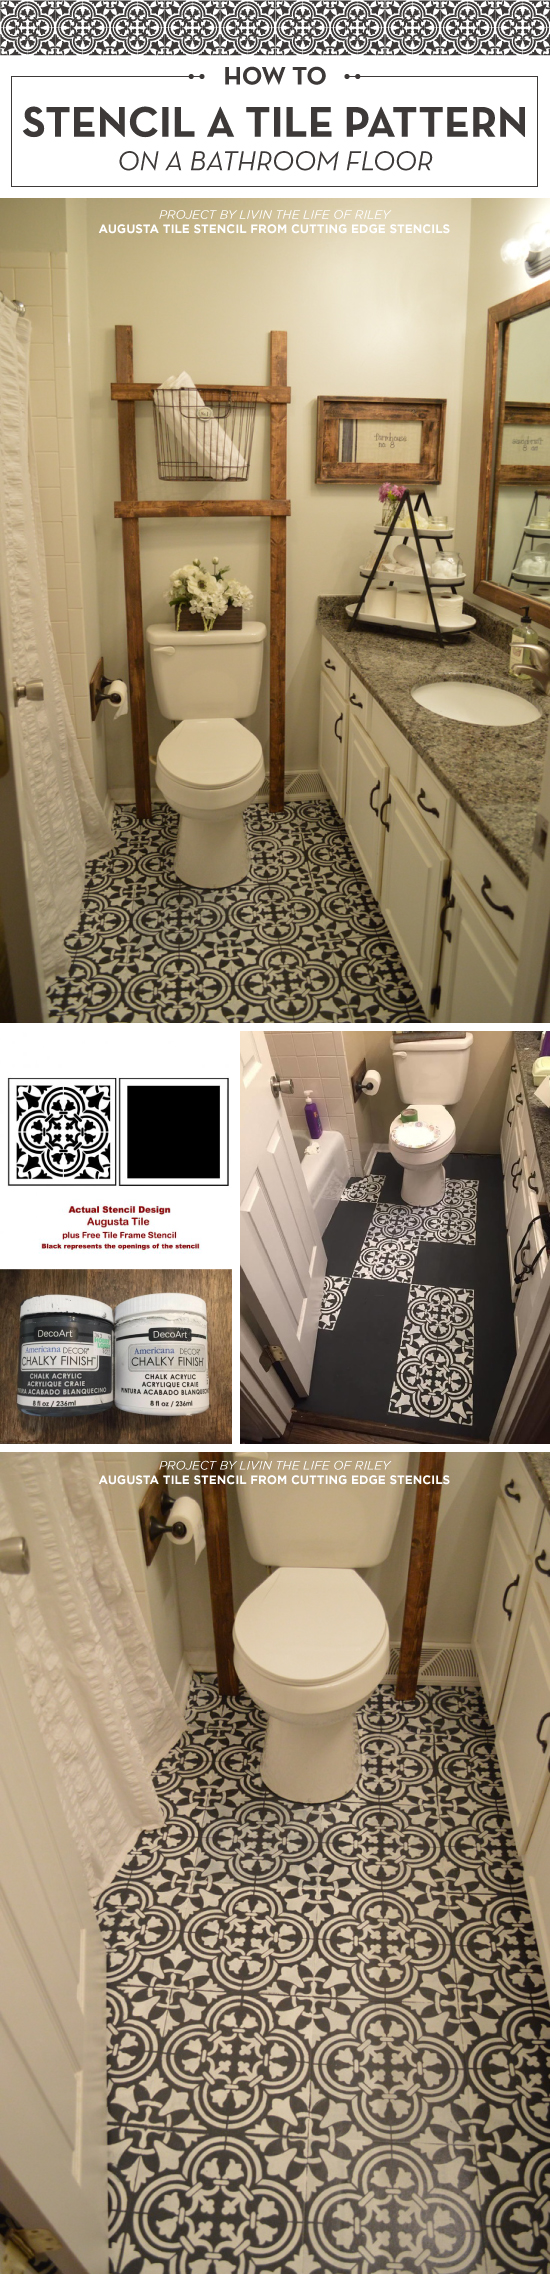 How To Stencil A Tile Pattern On A Bathroom Floor - Stencil ...